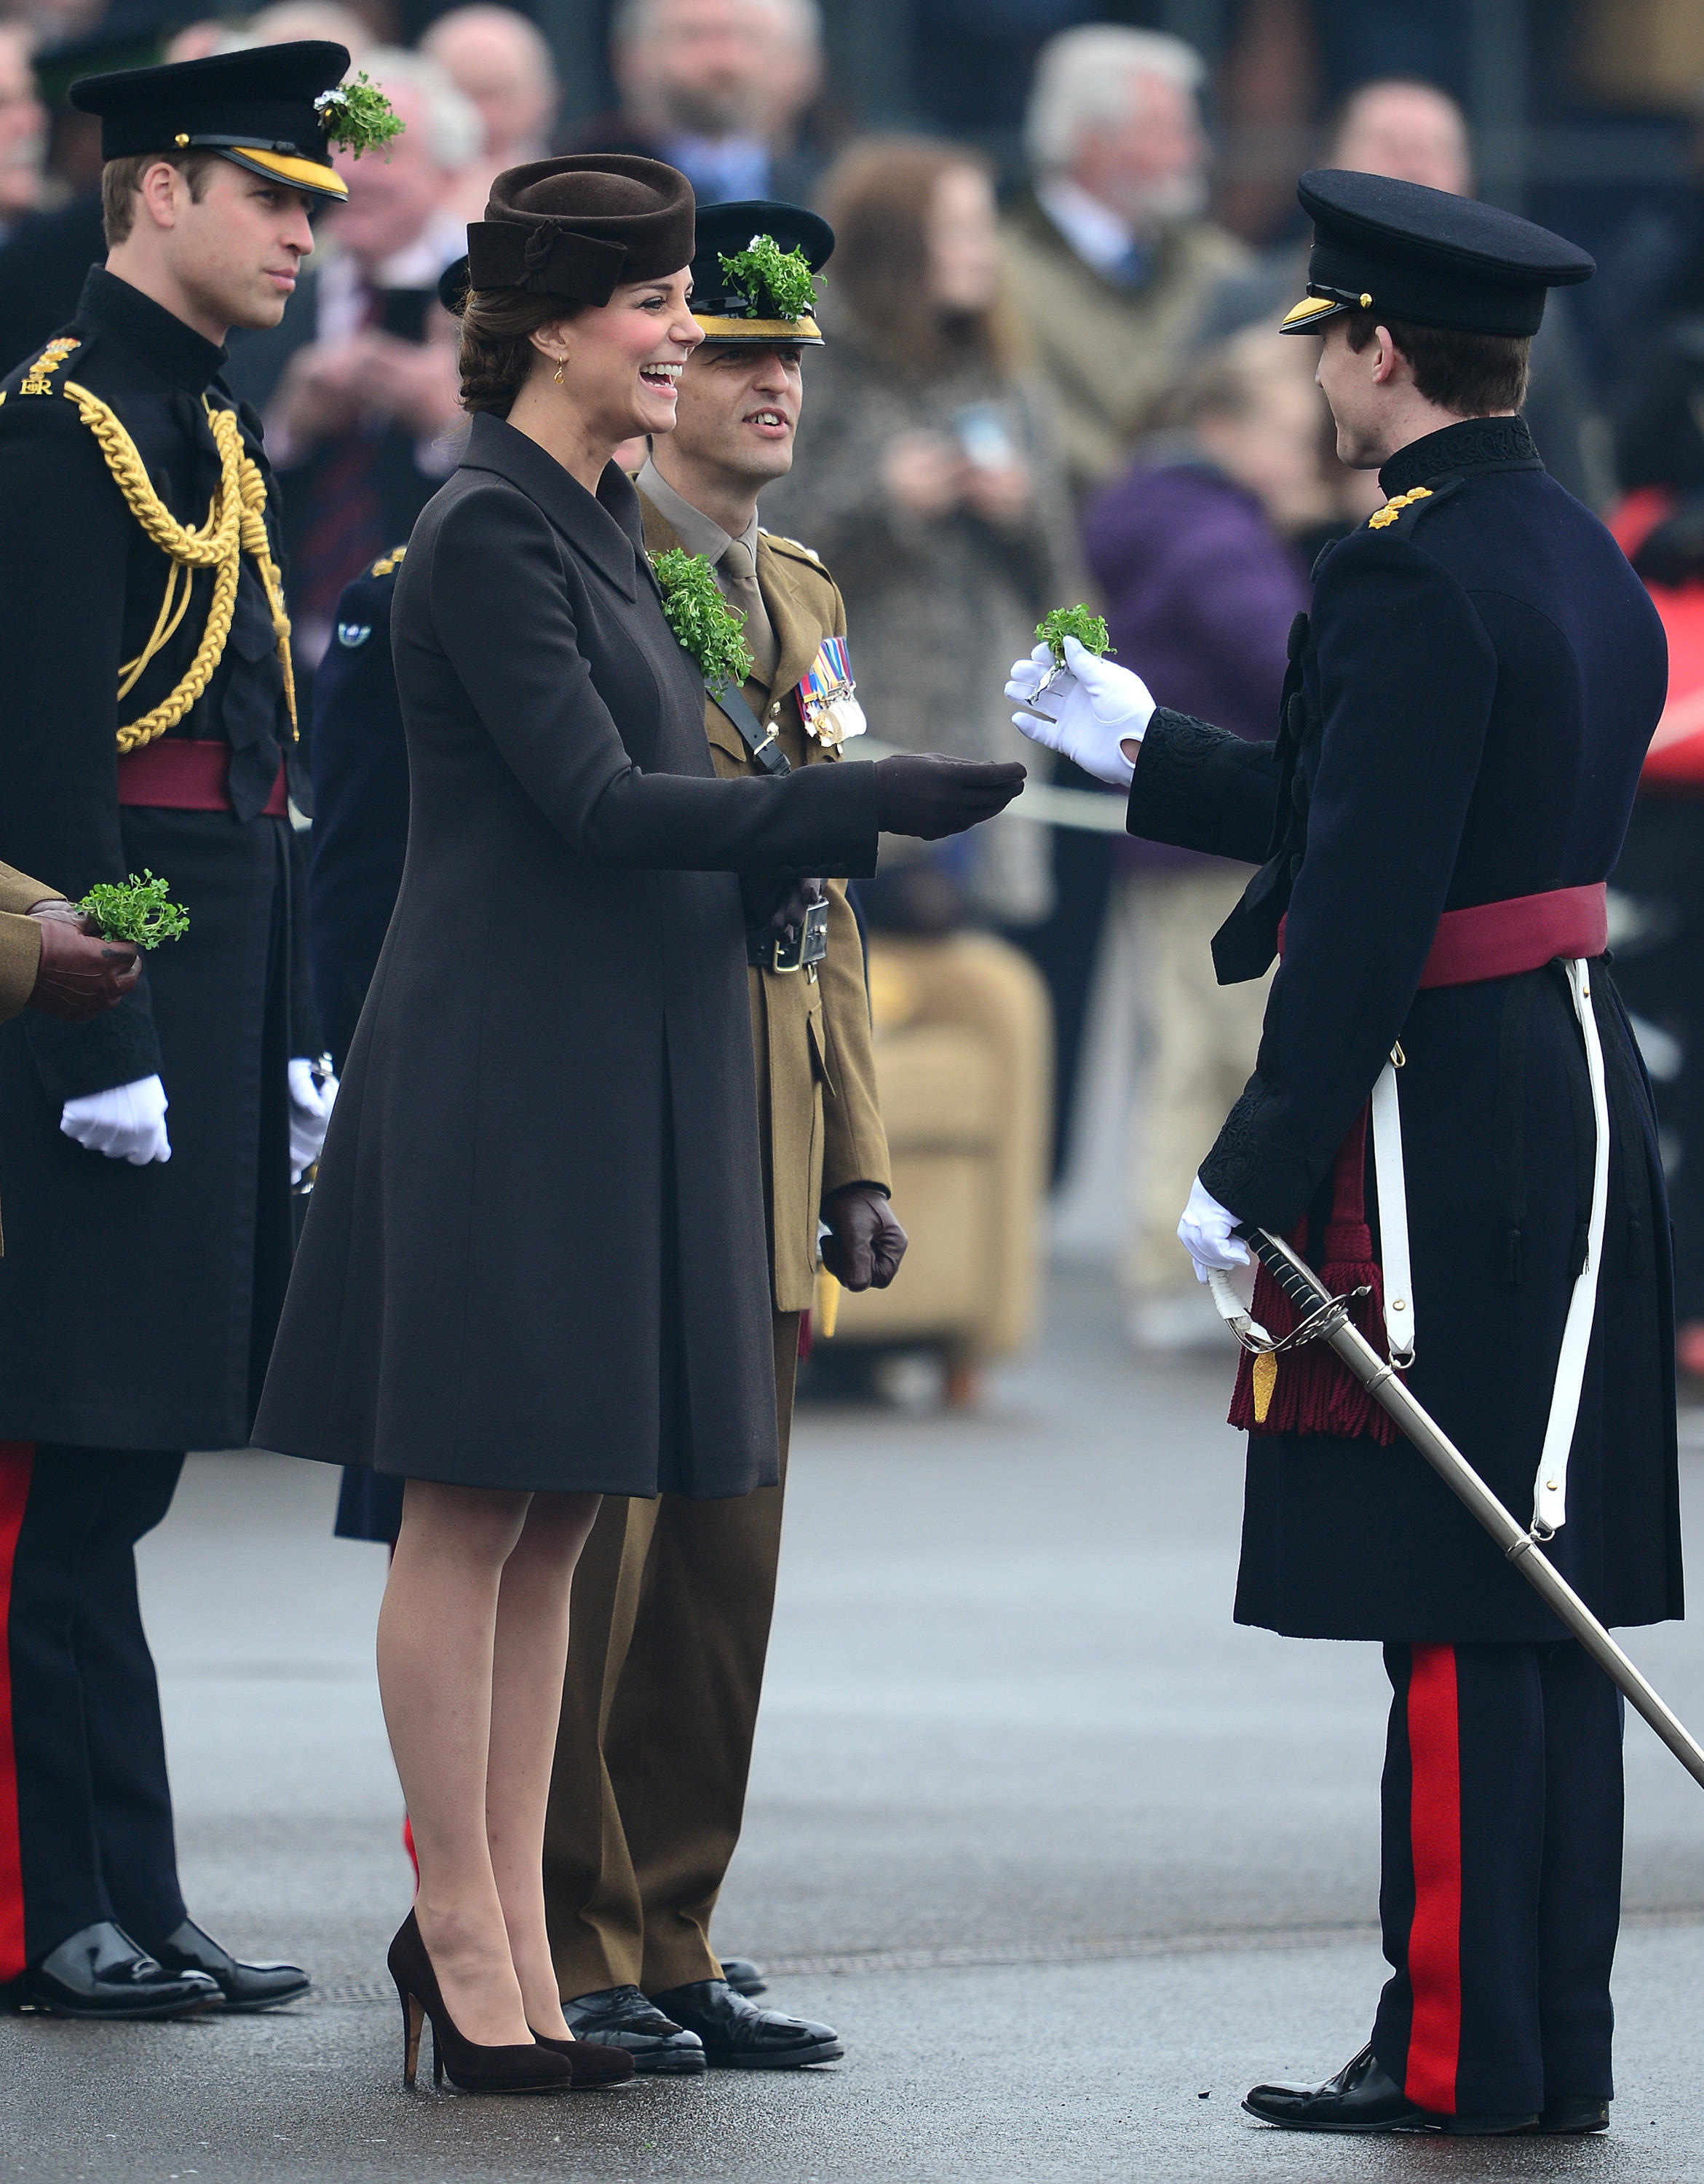 Kate Middleton and Prince William attend the St. Patrick's Day Parade